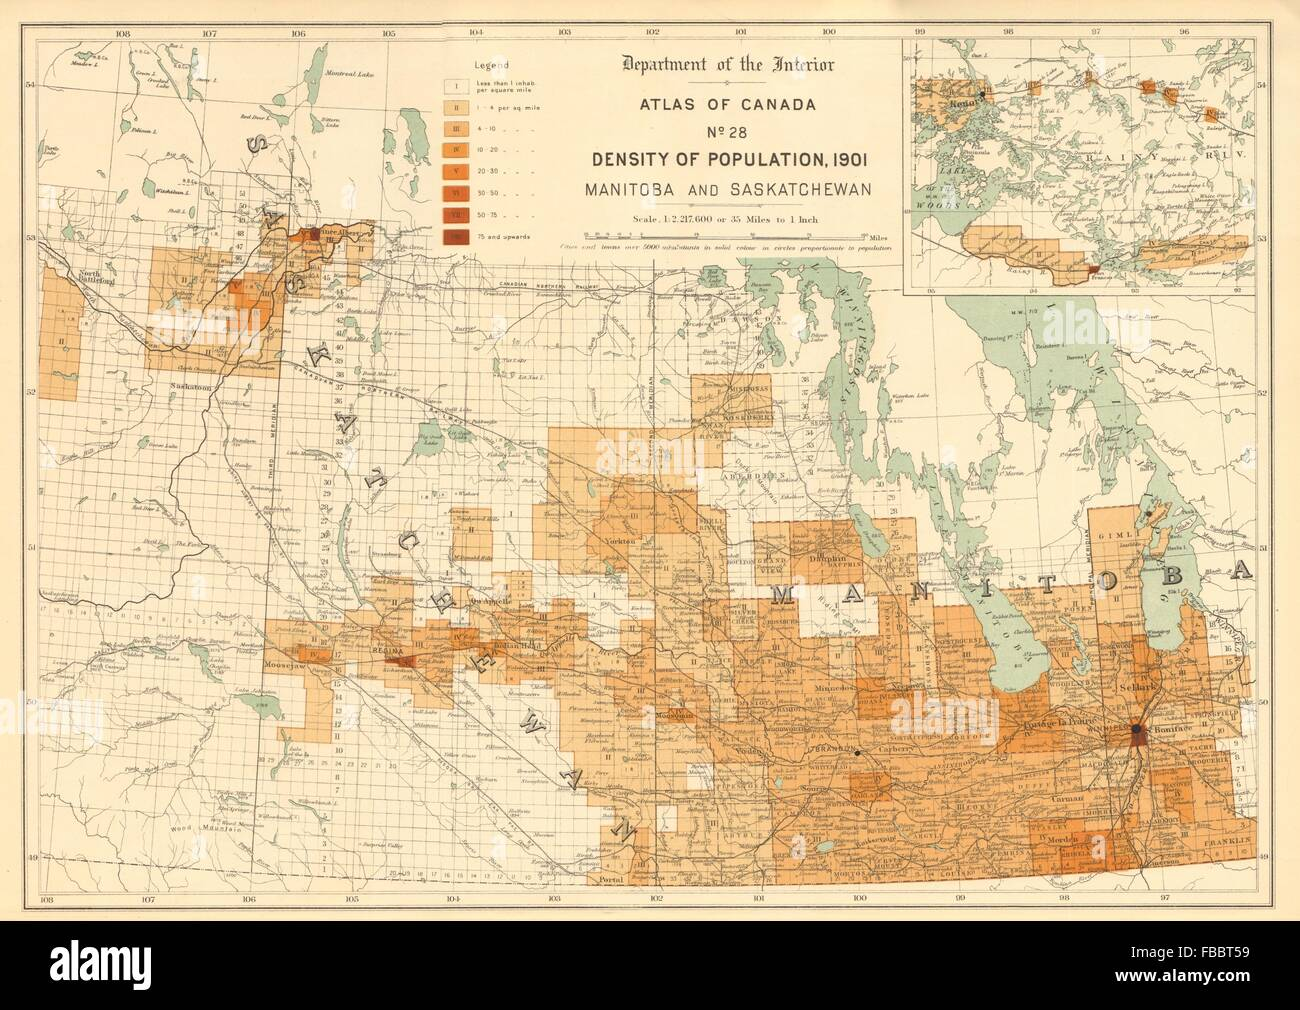 Canada population density 1901 manitoba and saskatchewan white manitoba and saskatchewan white 1906 old map gumiabroncs Gallery